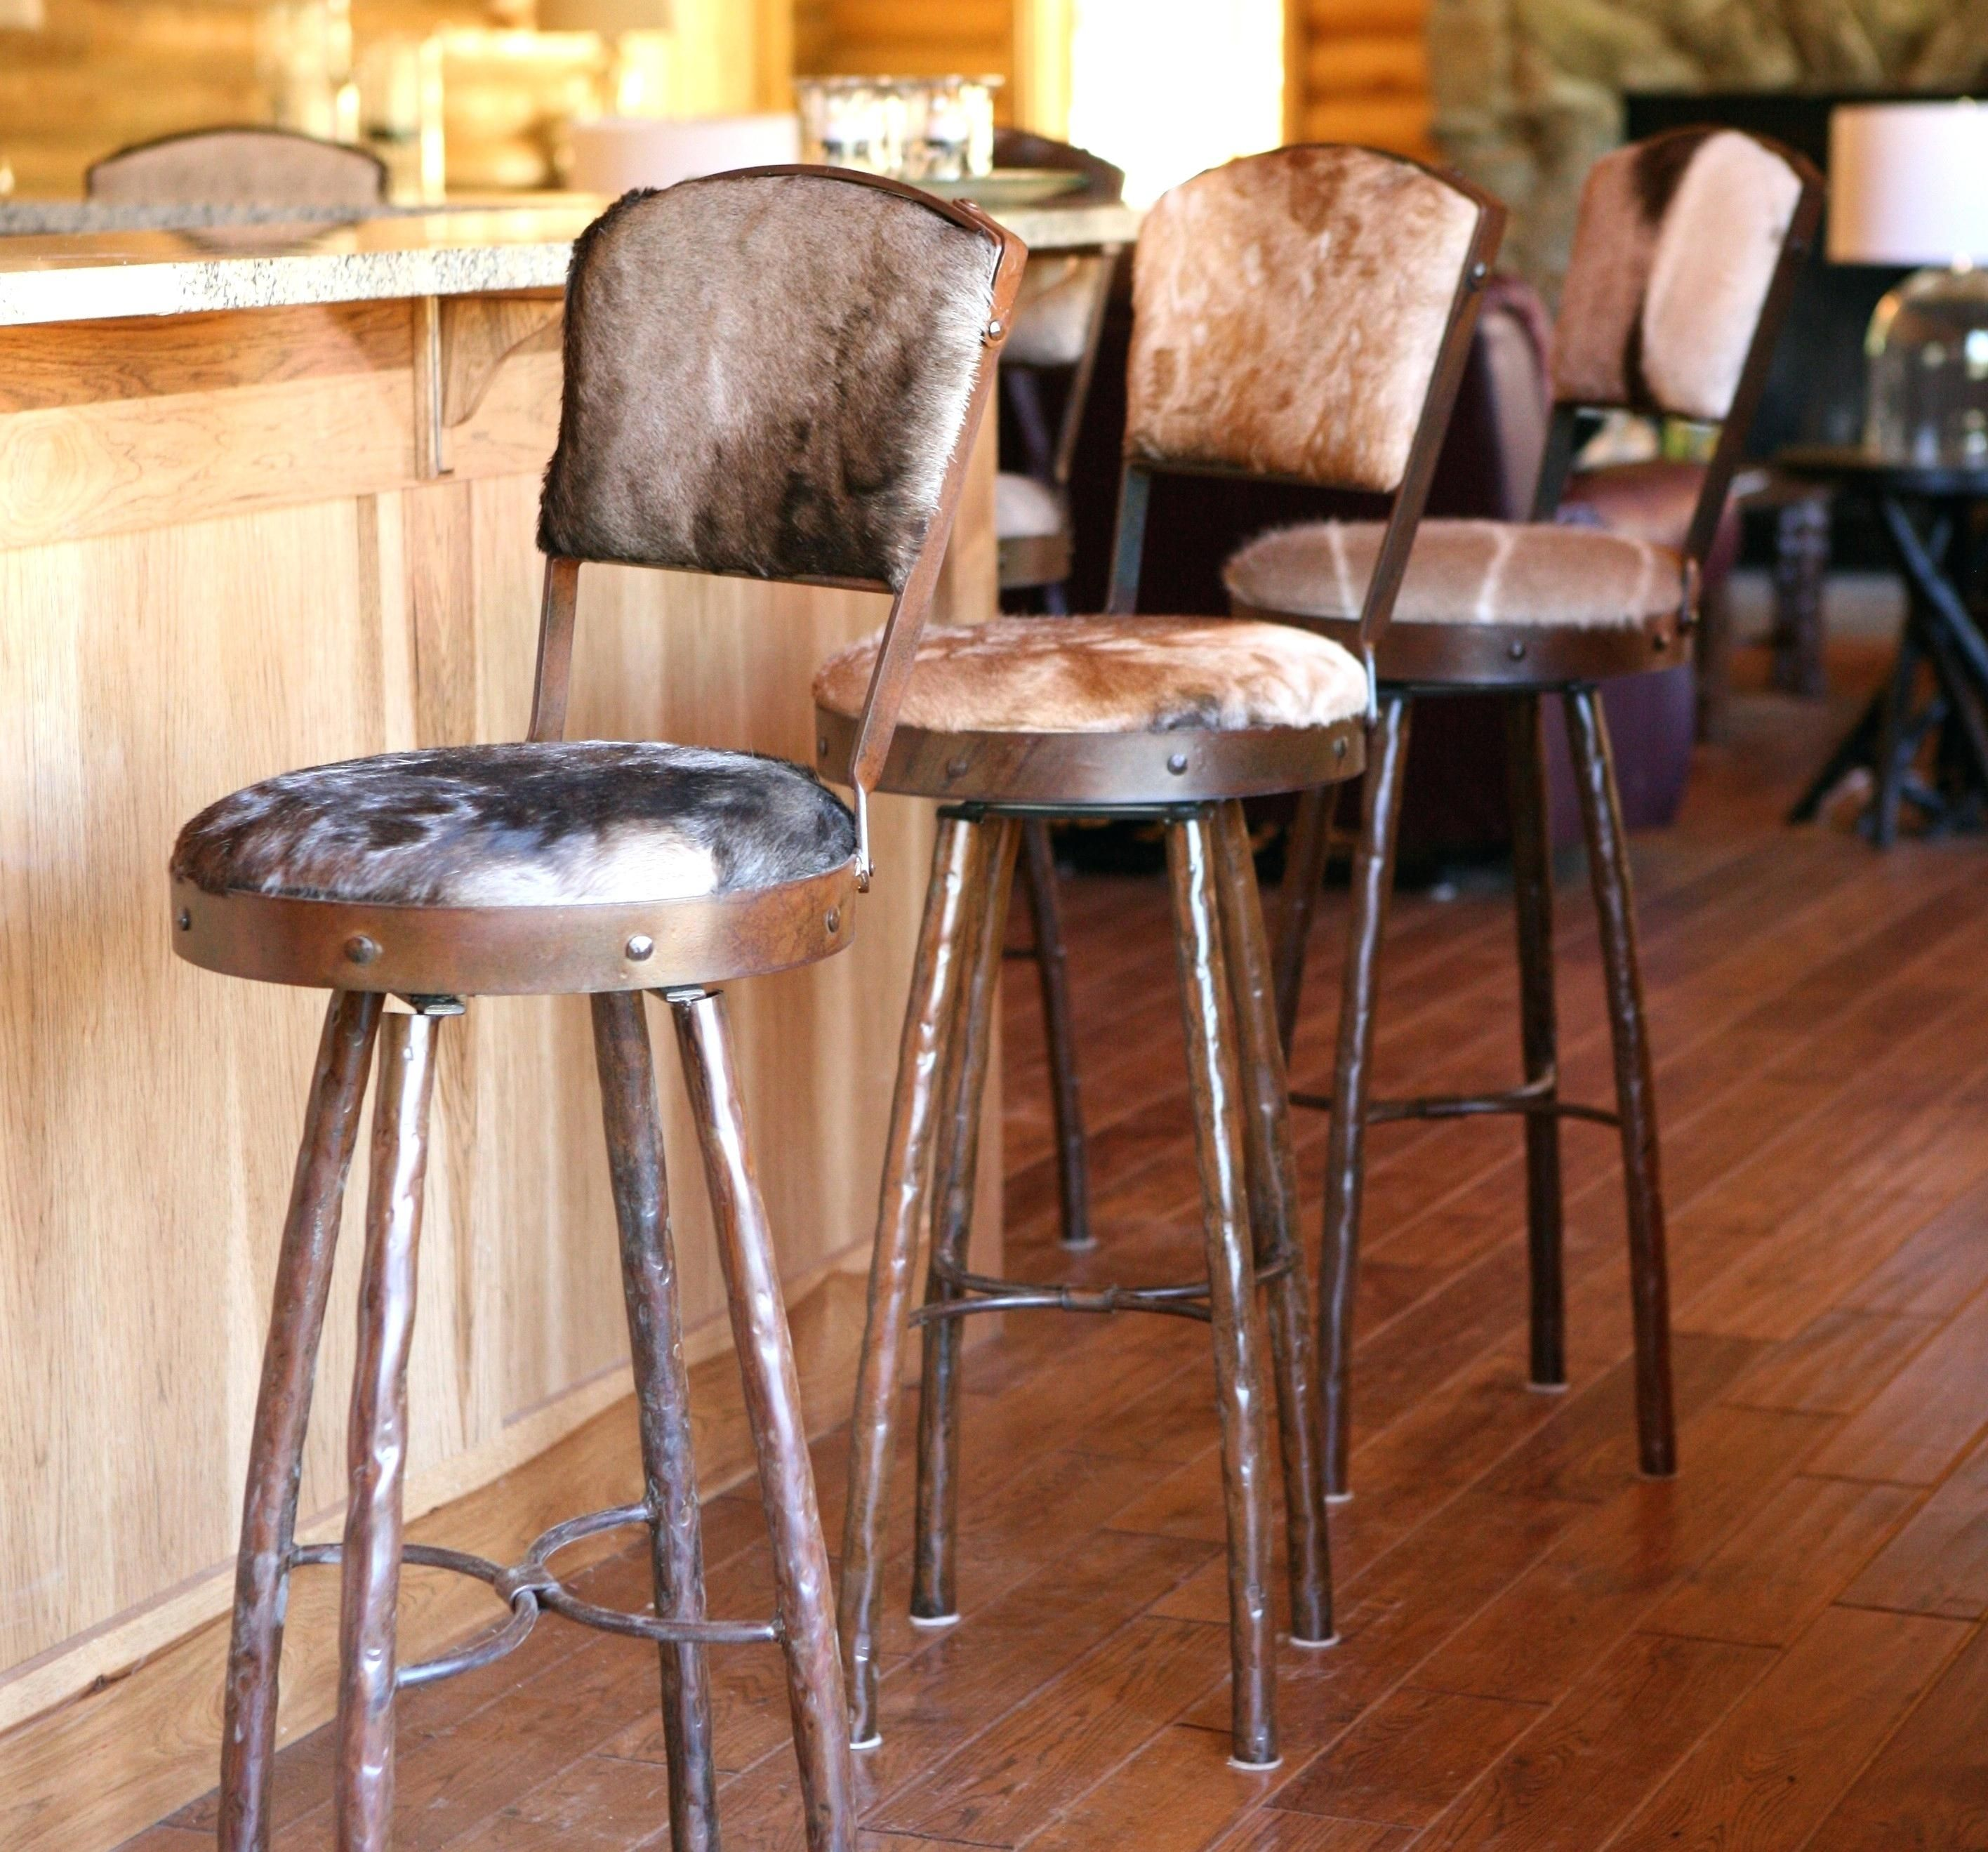 Round Metal Bar Stools Cowhide Bar Stools Kitchen Stools With Back Iron Bar Stools